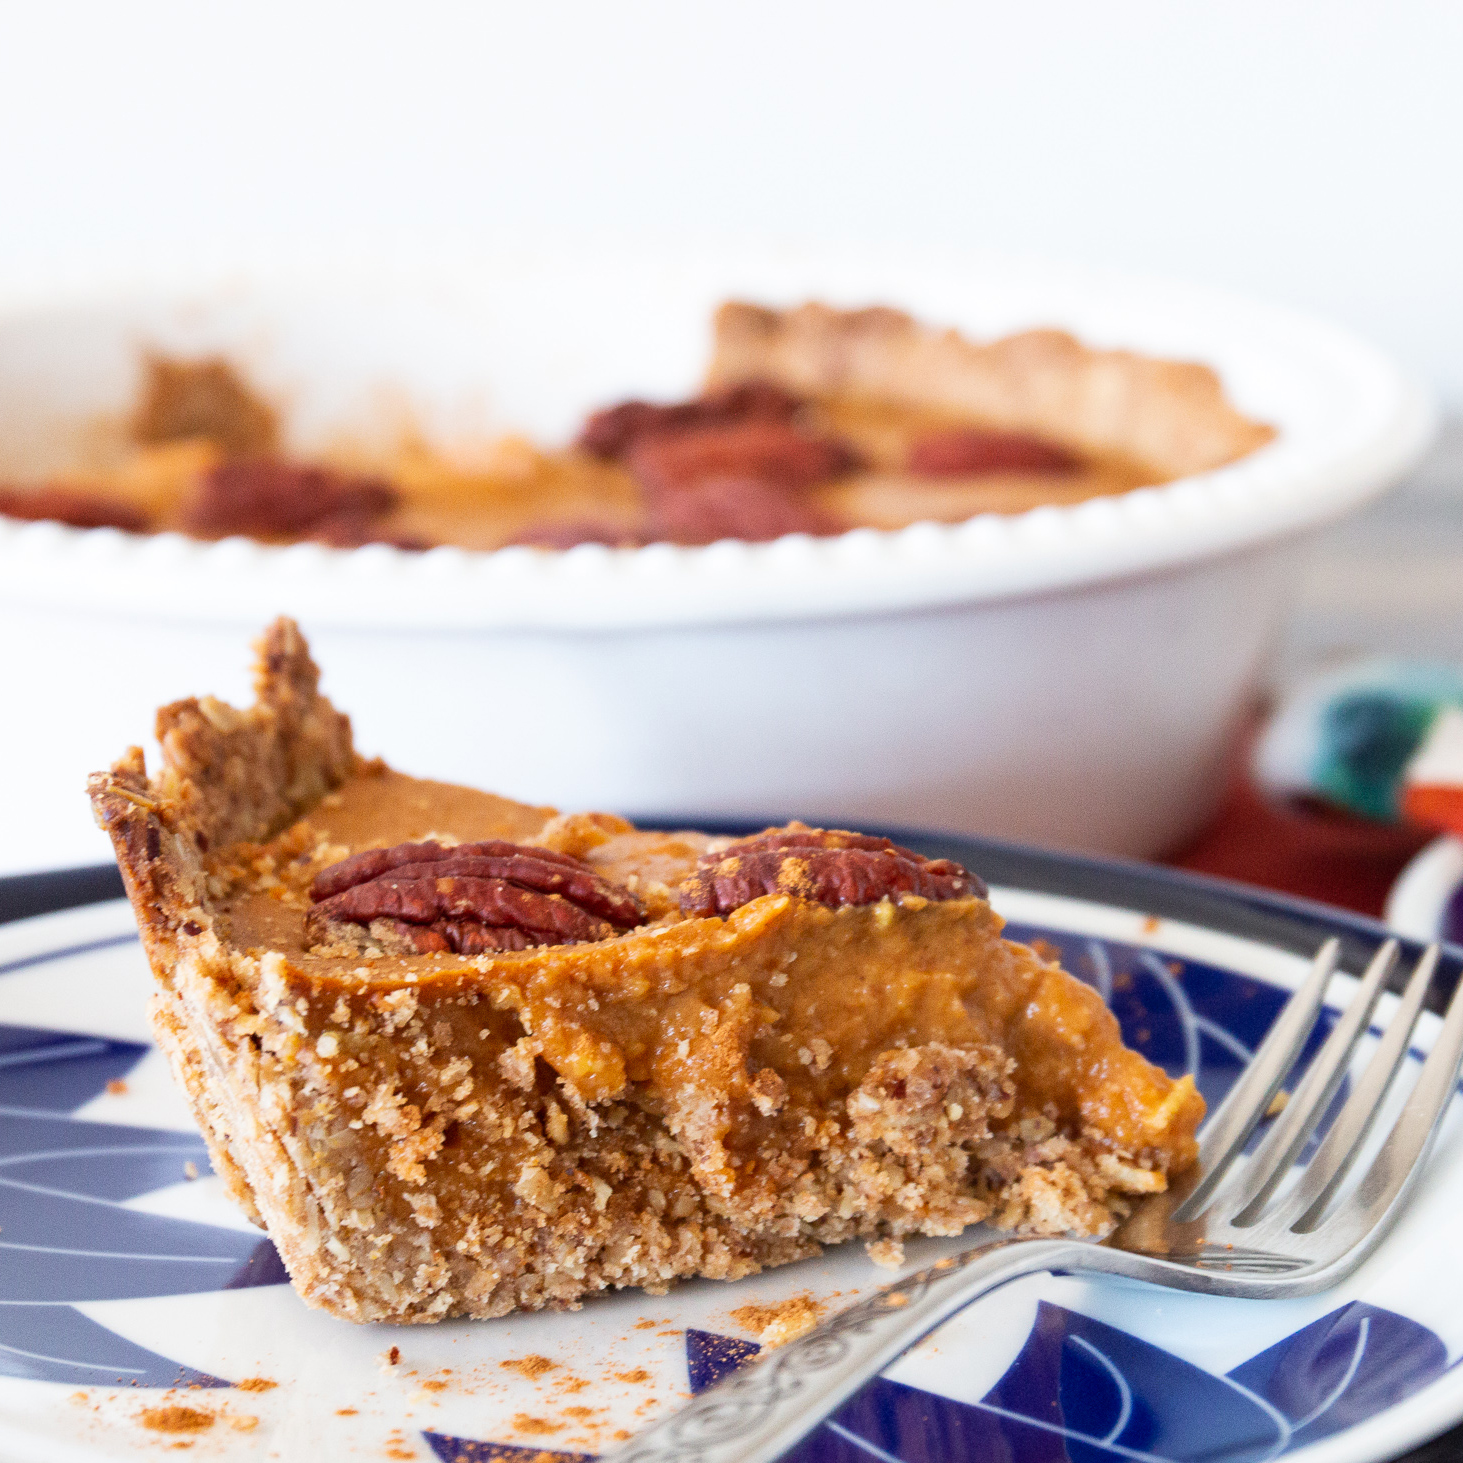 Pumpkin Tart With Pecan Crust on a blue and white plate